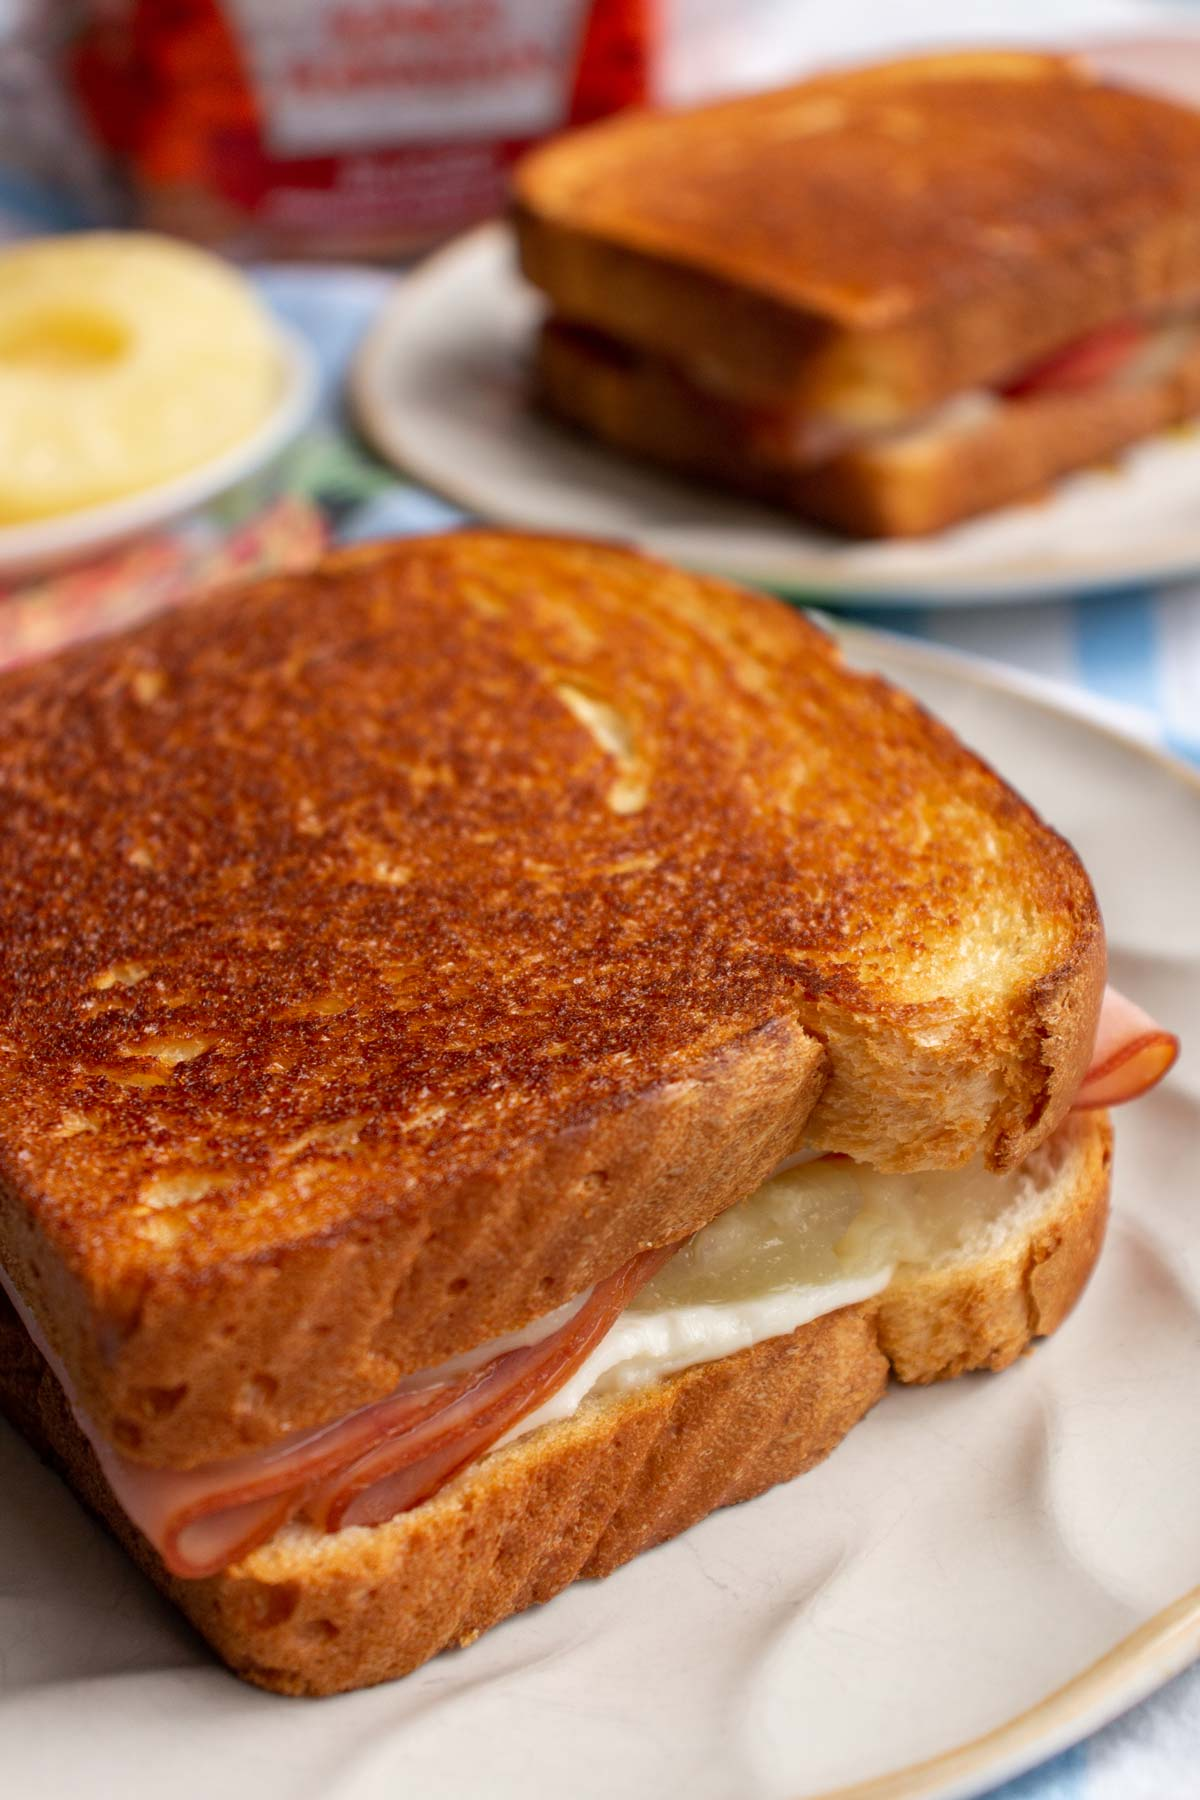 Closeup of a grilled cheese sandwich with ham and pineapple in the filling.